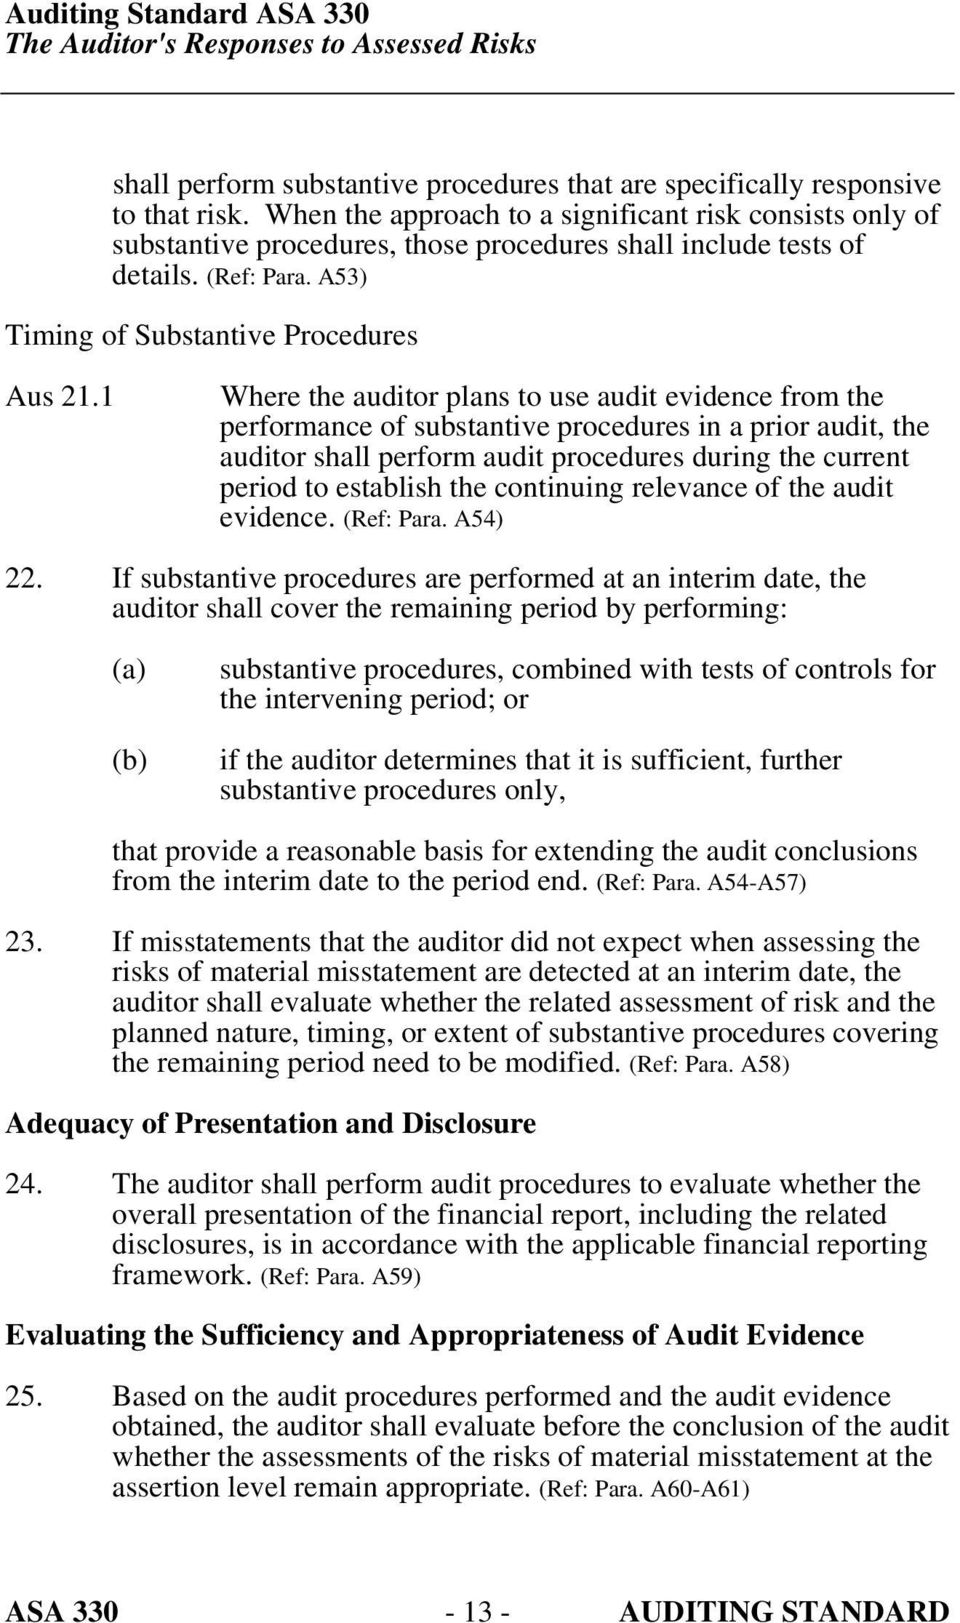 1 Where the auditor plans to use audit evidence from the performance of substantive procedures in a prior audit, the auditor shall perform audit procedures during the current period to establish the